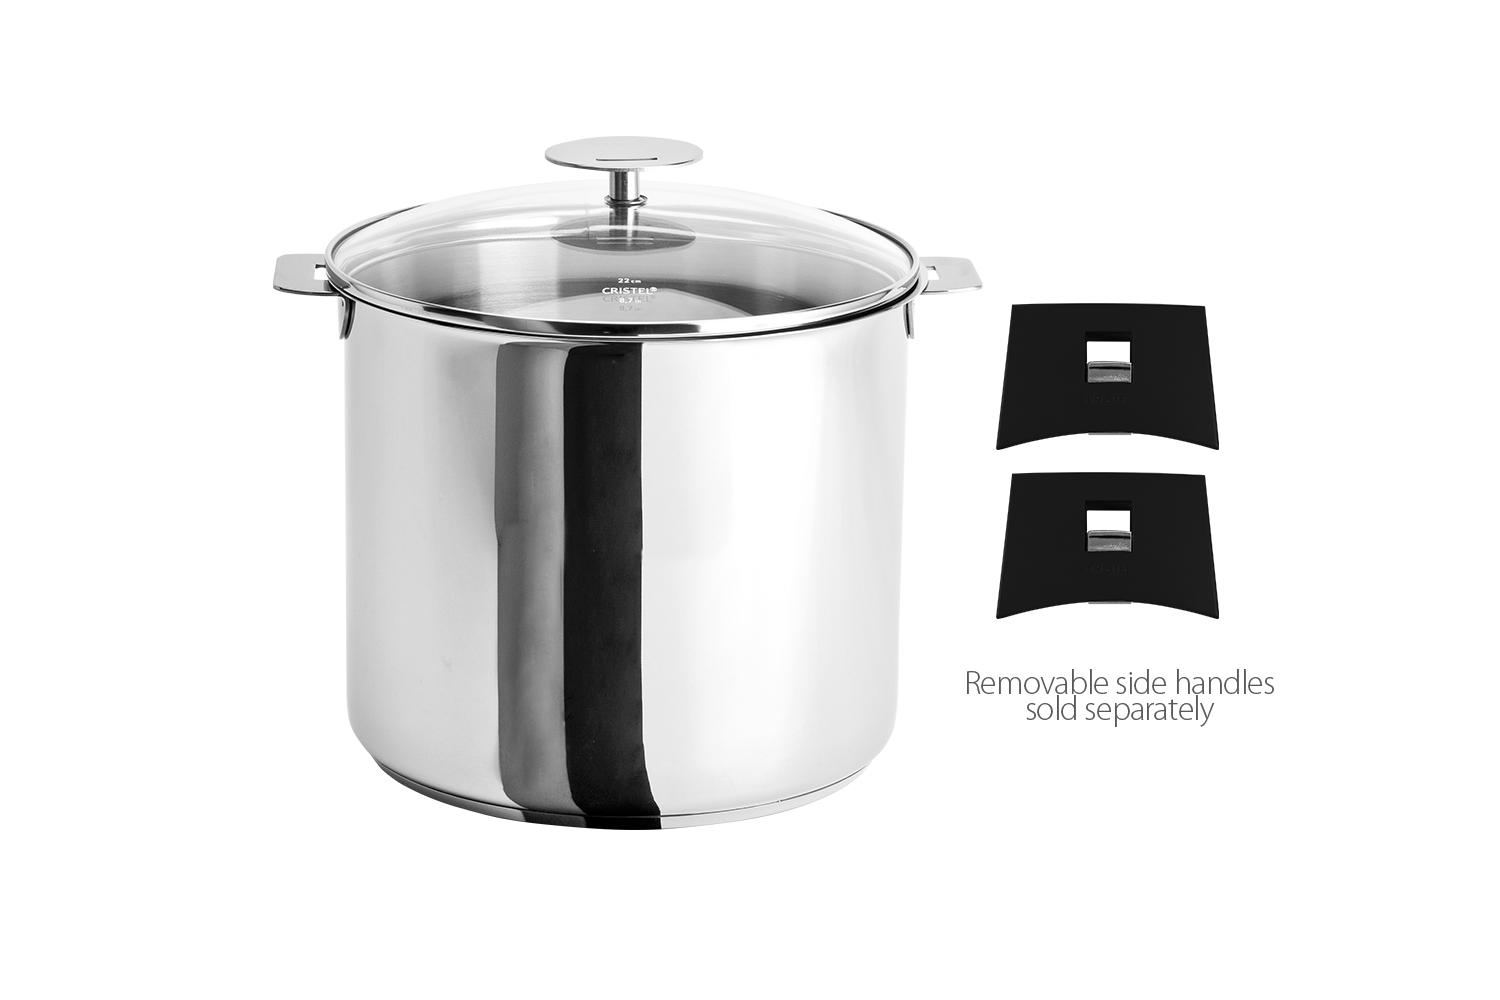 Cristel Stainless Steel 5.5 qt. Stock Pot w/Glass Lid